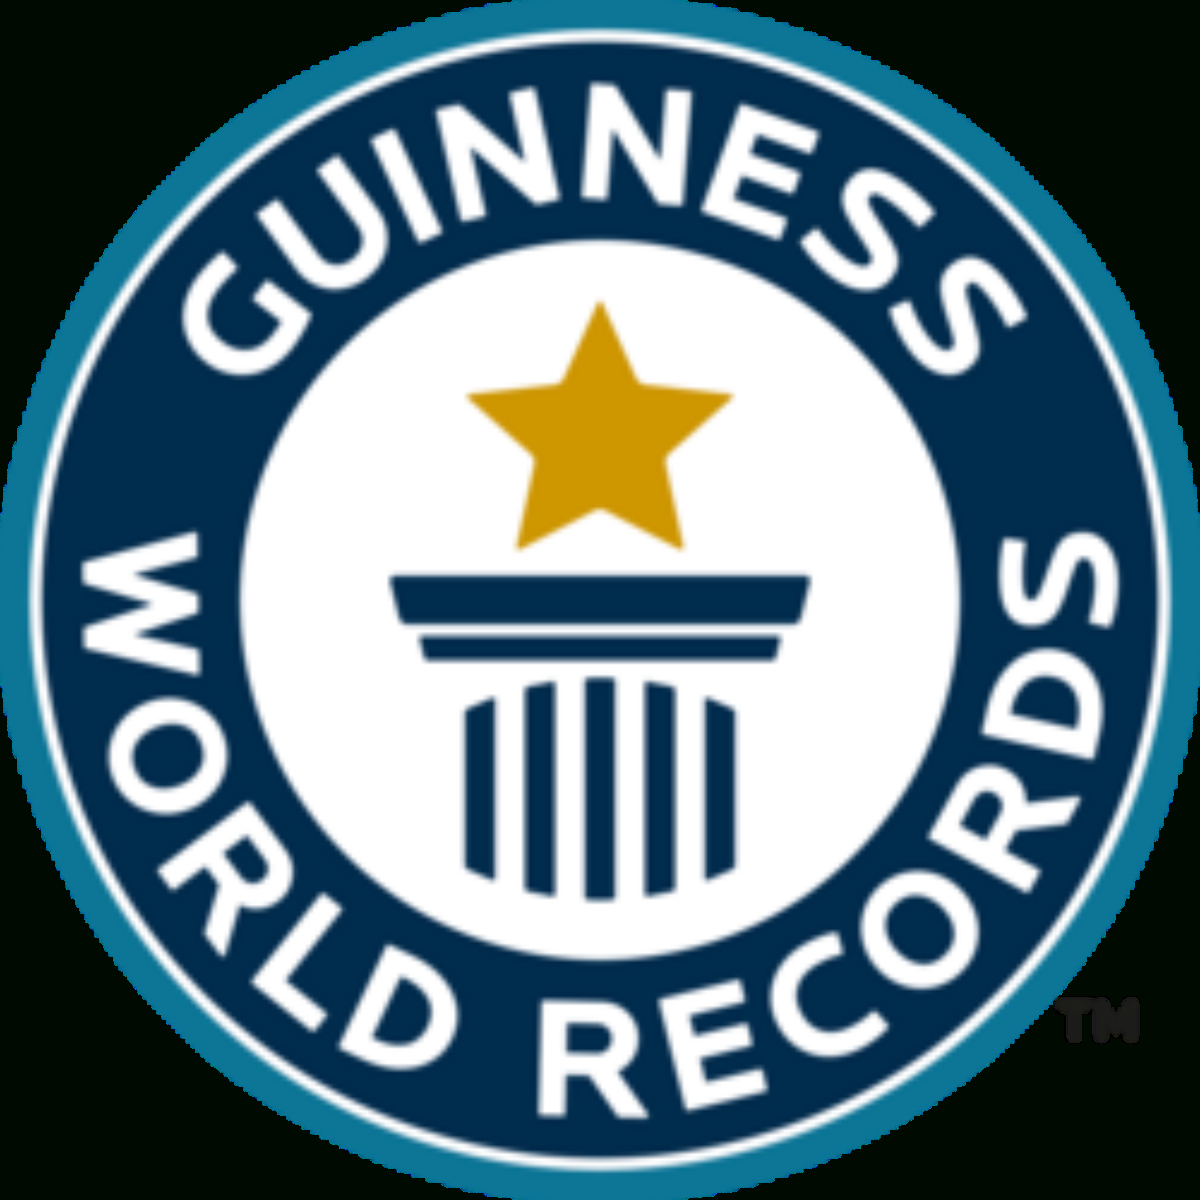 Guinness World Records  Wikipedia Regarding Guinness World Record Certificate Template